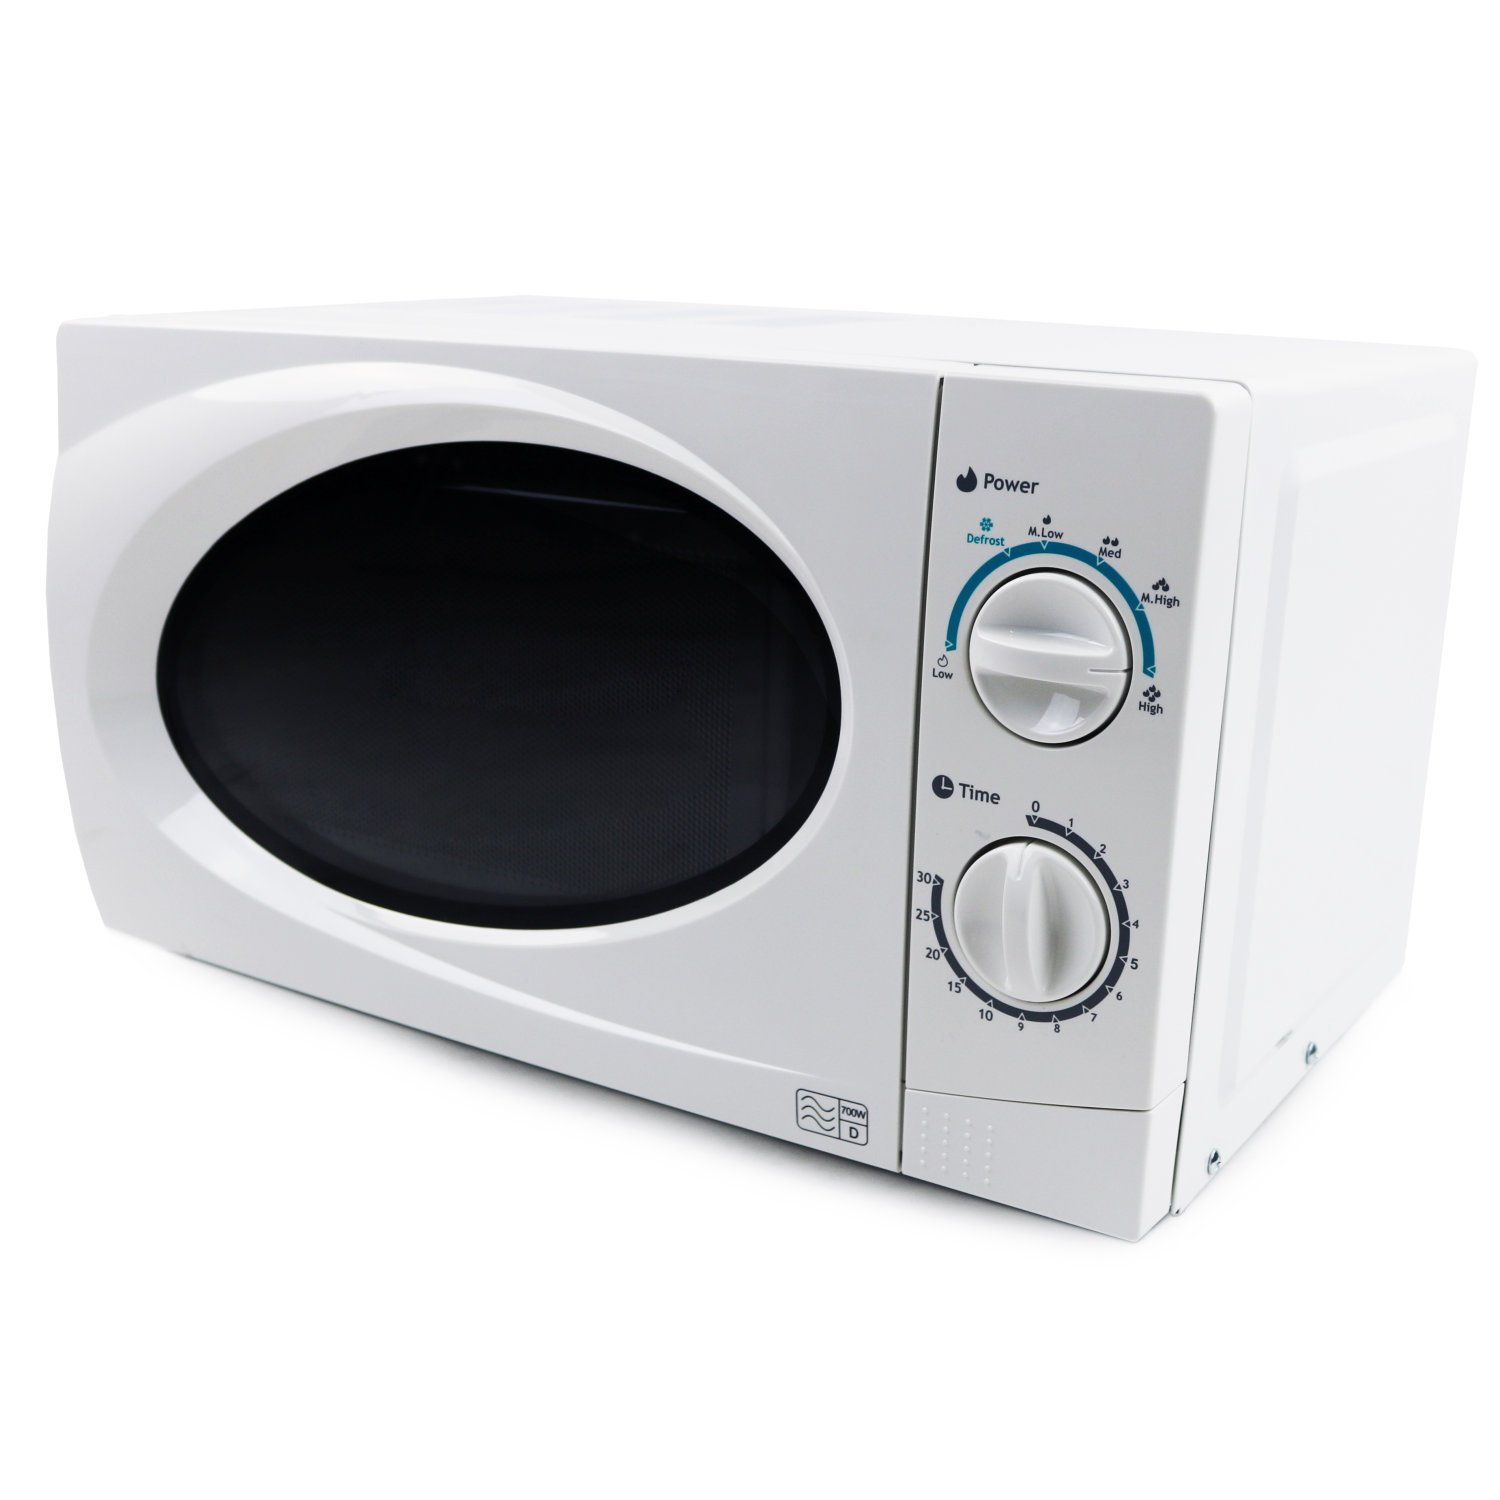 700w Compact Microwave Oven